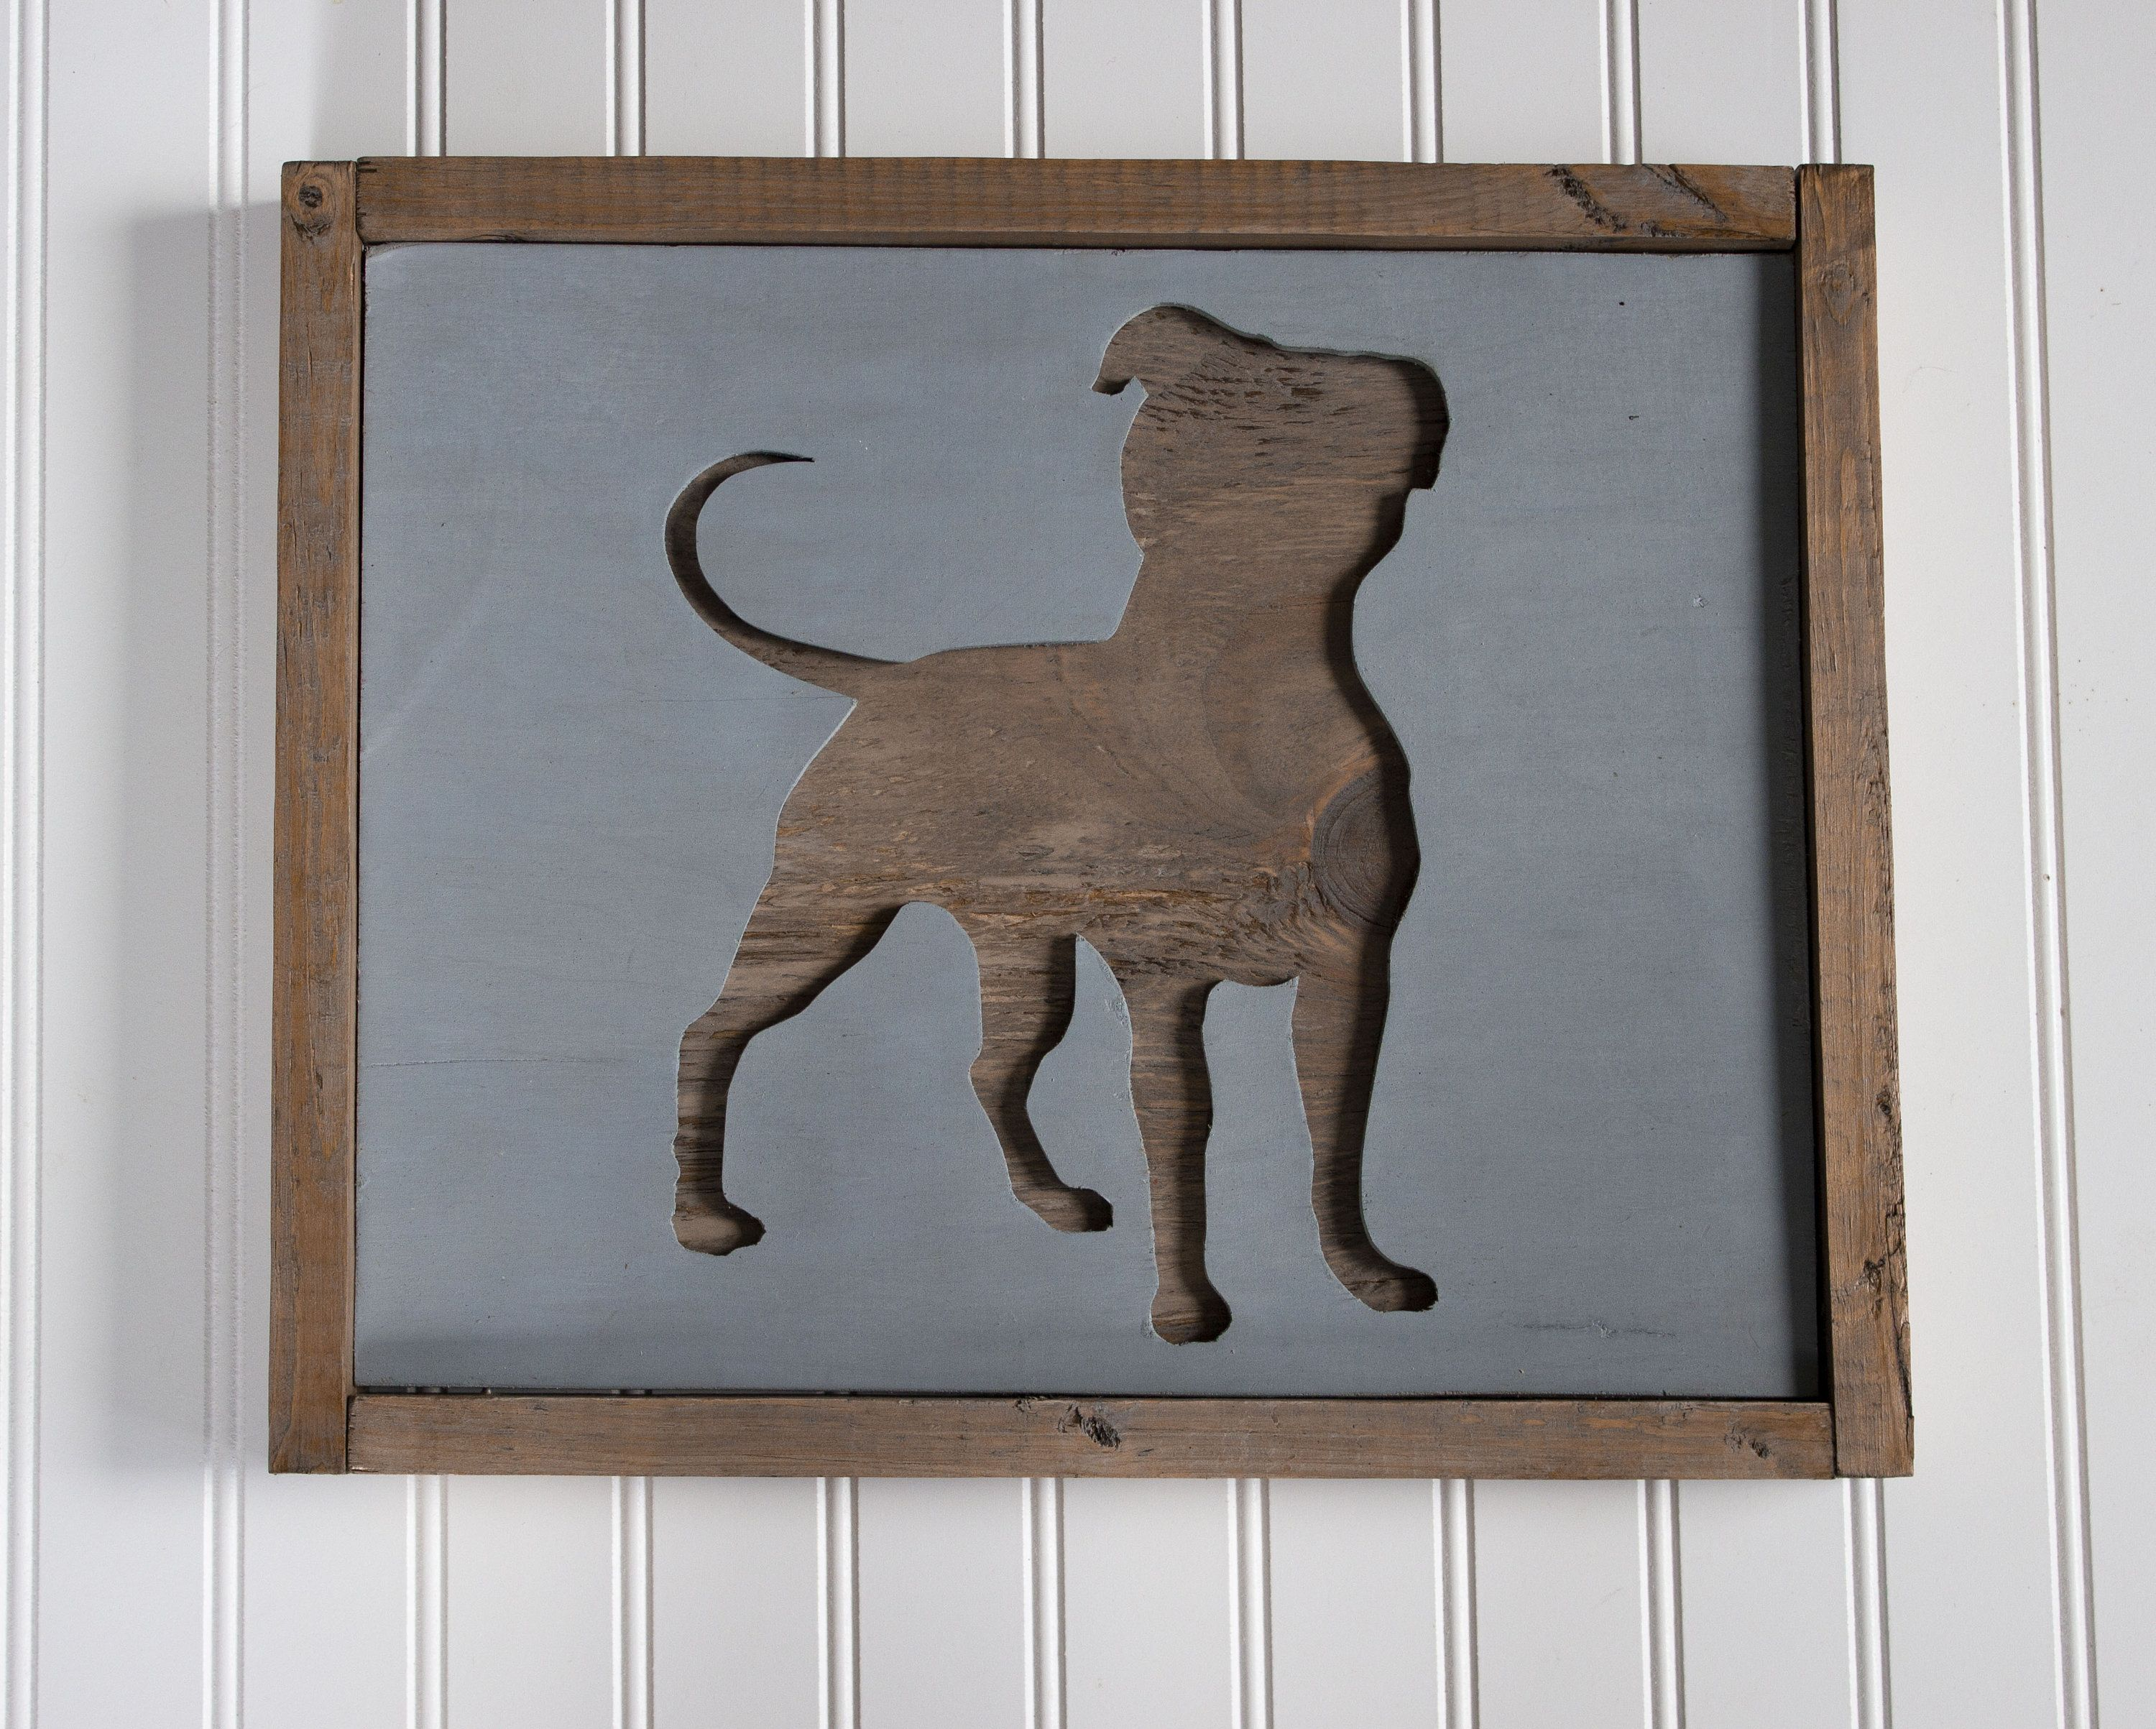 Pitbull Silhouette on White Painted Wood with Wood Frame Farmhouse Decor Dogs Custom Dog Portraits Gift for Dog Lovers Dog Mom Dad